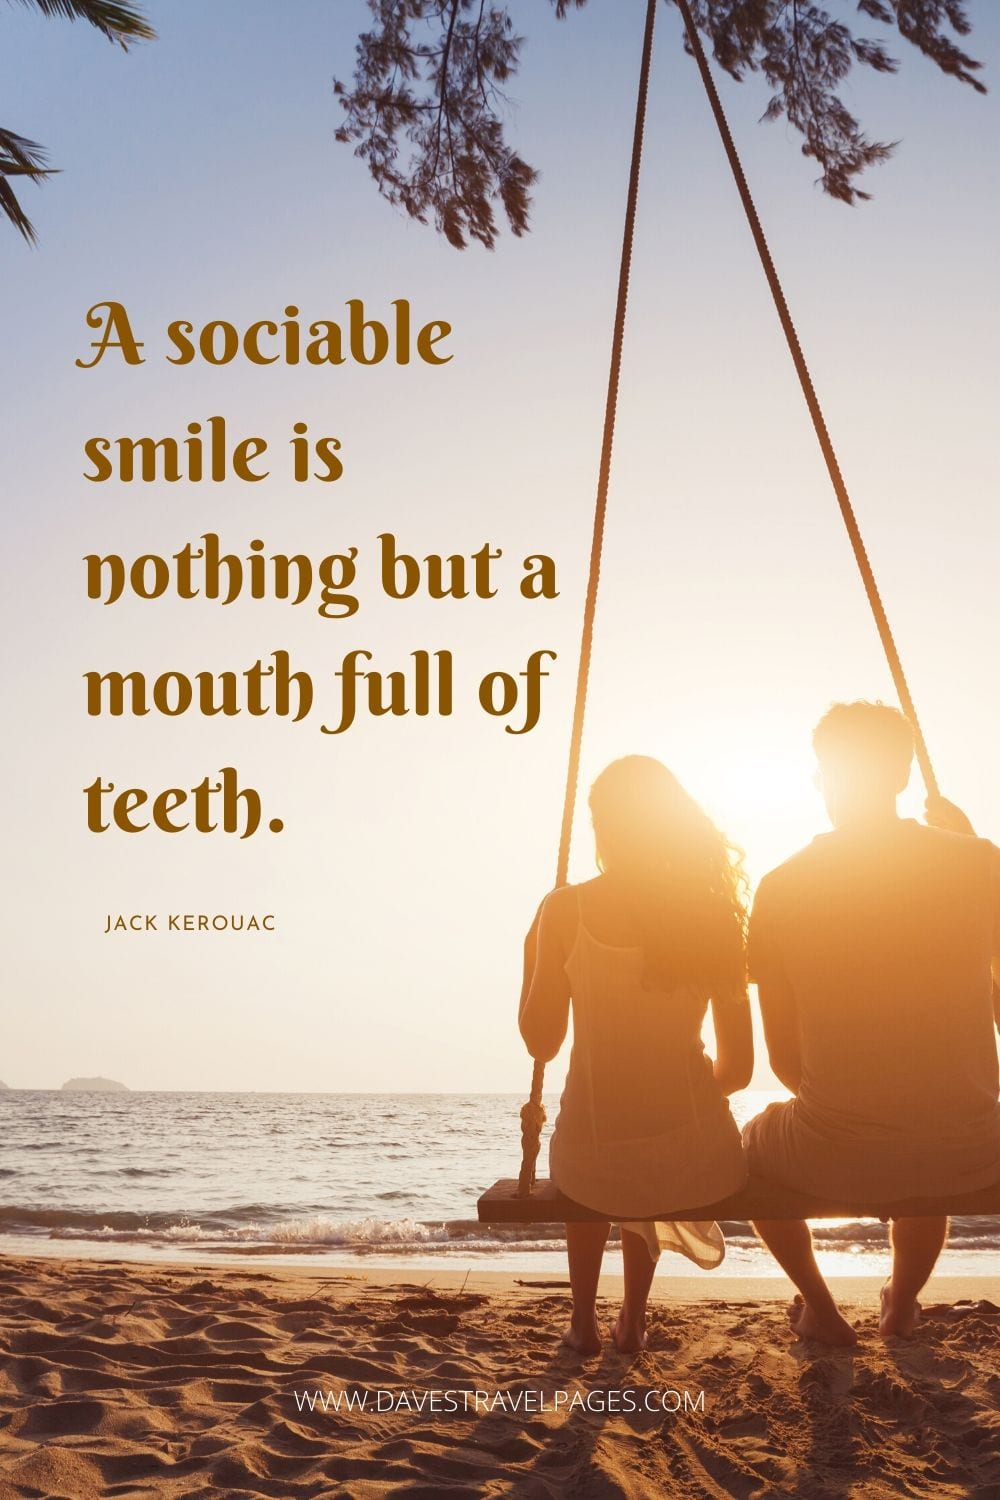 """a sociable smile is nothing but a mouth full of teeth"" - Jack Kerouac quotes"